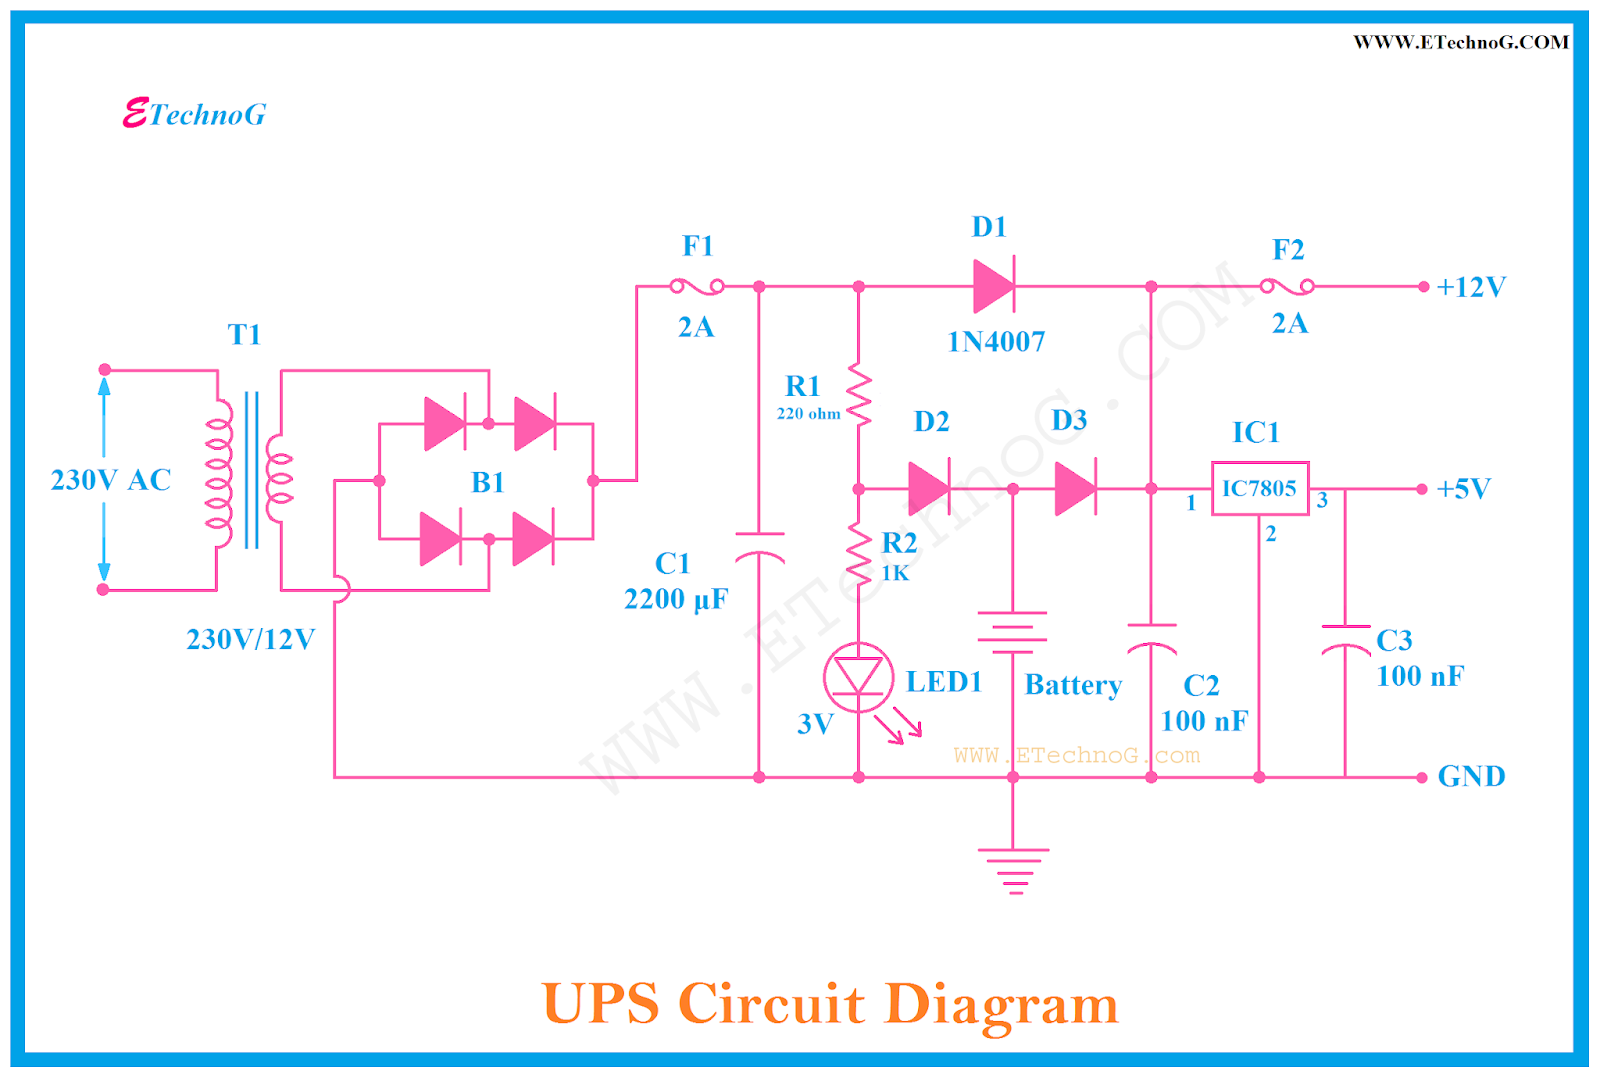 Power Supply And Power Control Circuit Diagrams Circuit Review ... on 3 wire wiring diagram, circuit diagram, ups power diagram, as is to be diagram, led wiring diagram, how ups works diagram, ups line diagram, ups transformer diagram, apc ups diagram, electrical system diagram, ac to dc converter diagram, smps diagram, ups backup diagram, ups installation diagram, ups pcb diagram, exploded diagram, ups wiring diagram, ups inverter diagram, ups block diagram, ups cable diagram,